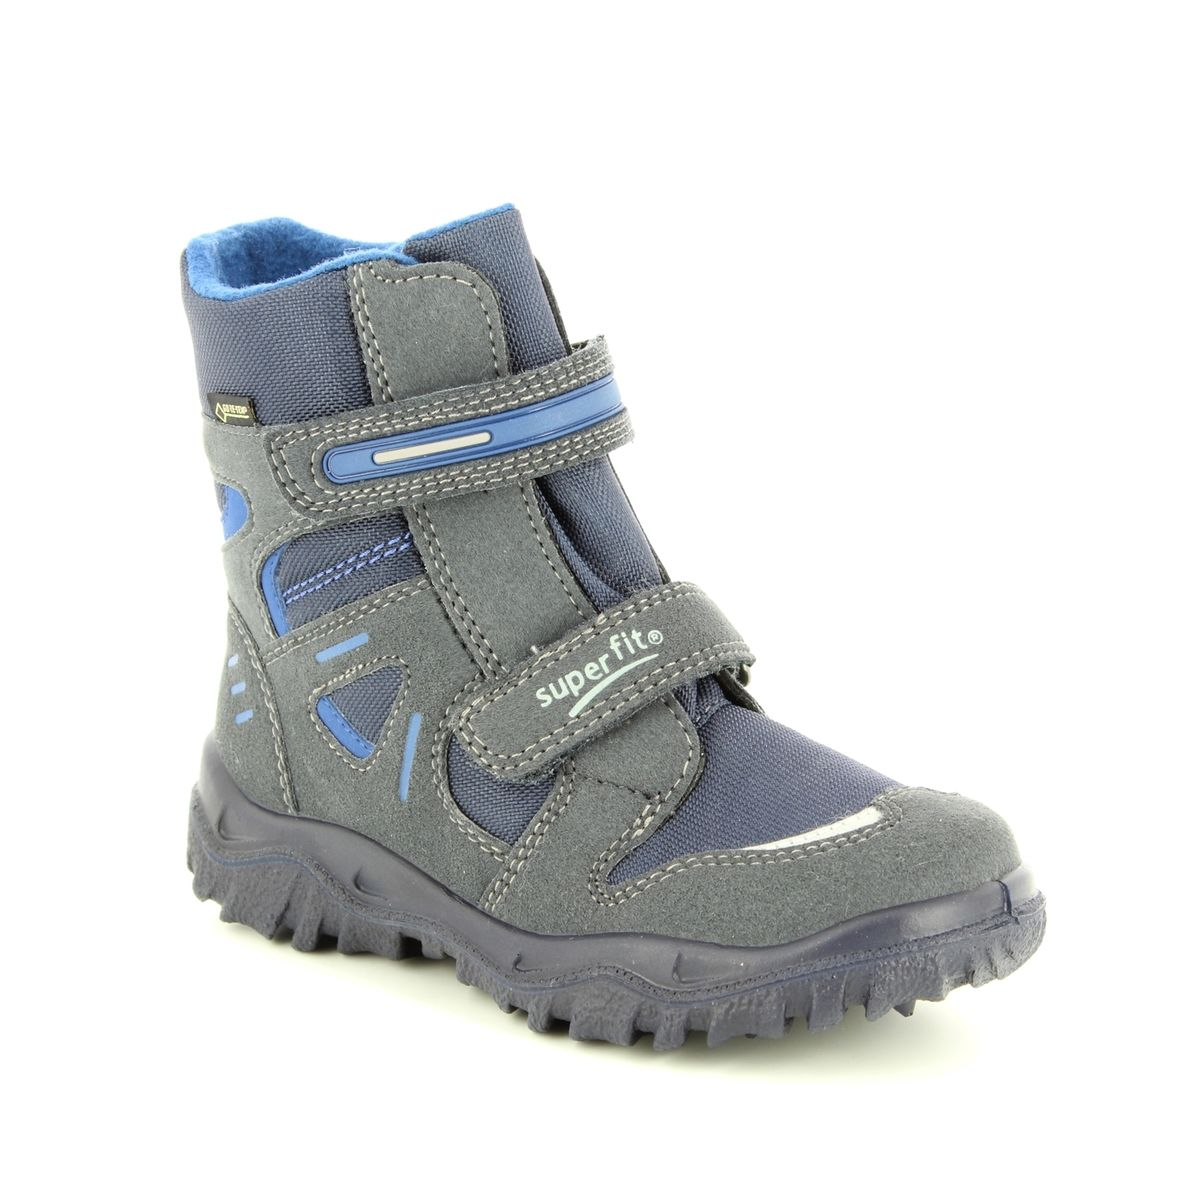 timeless design ae900 cfc44 09080/80 Husky Jnr Gore at Begg Shoes & Bags